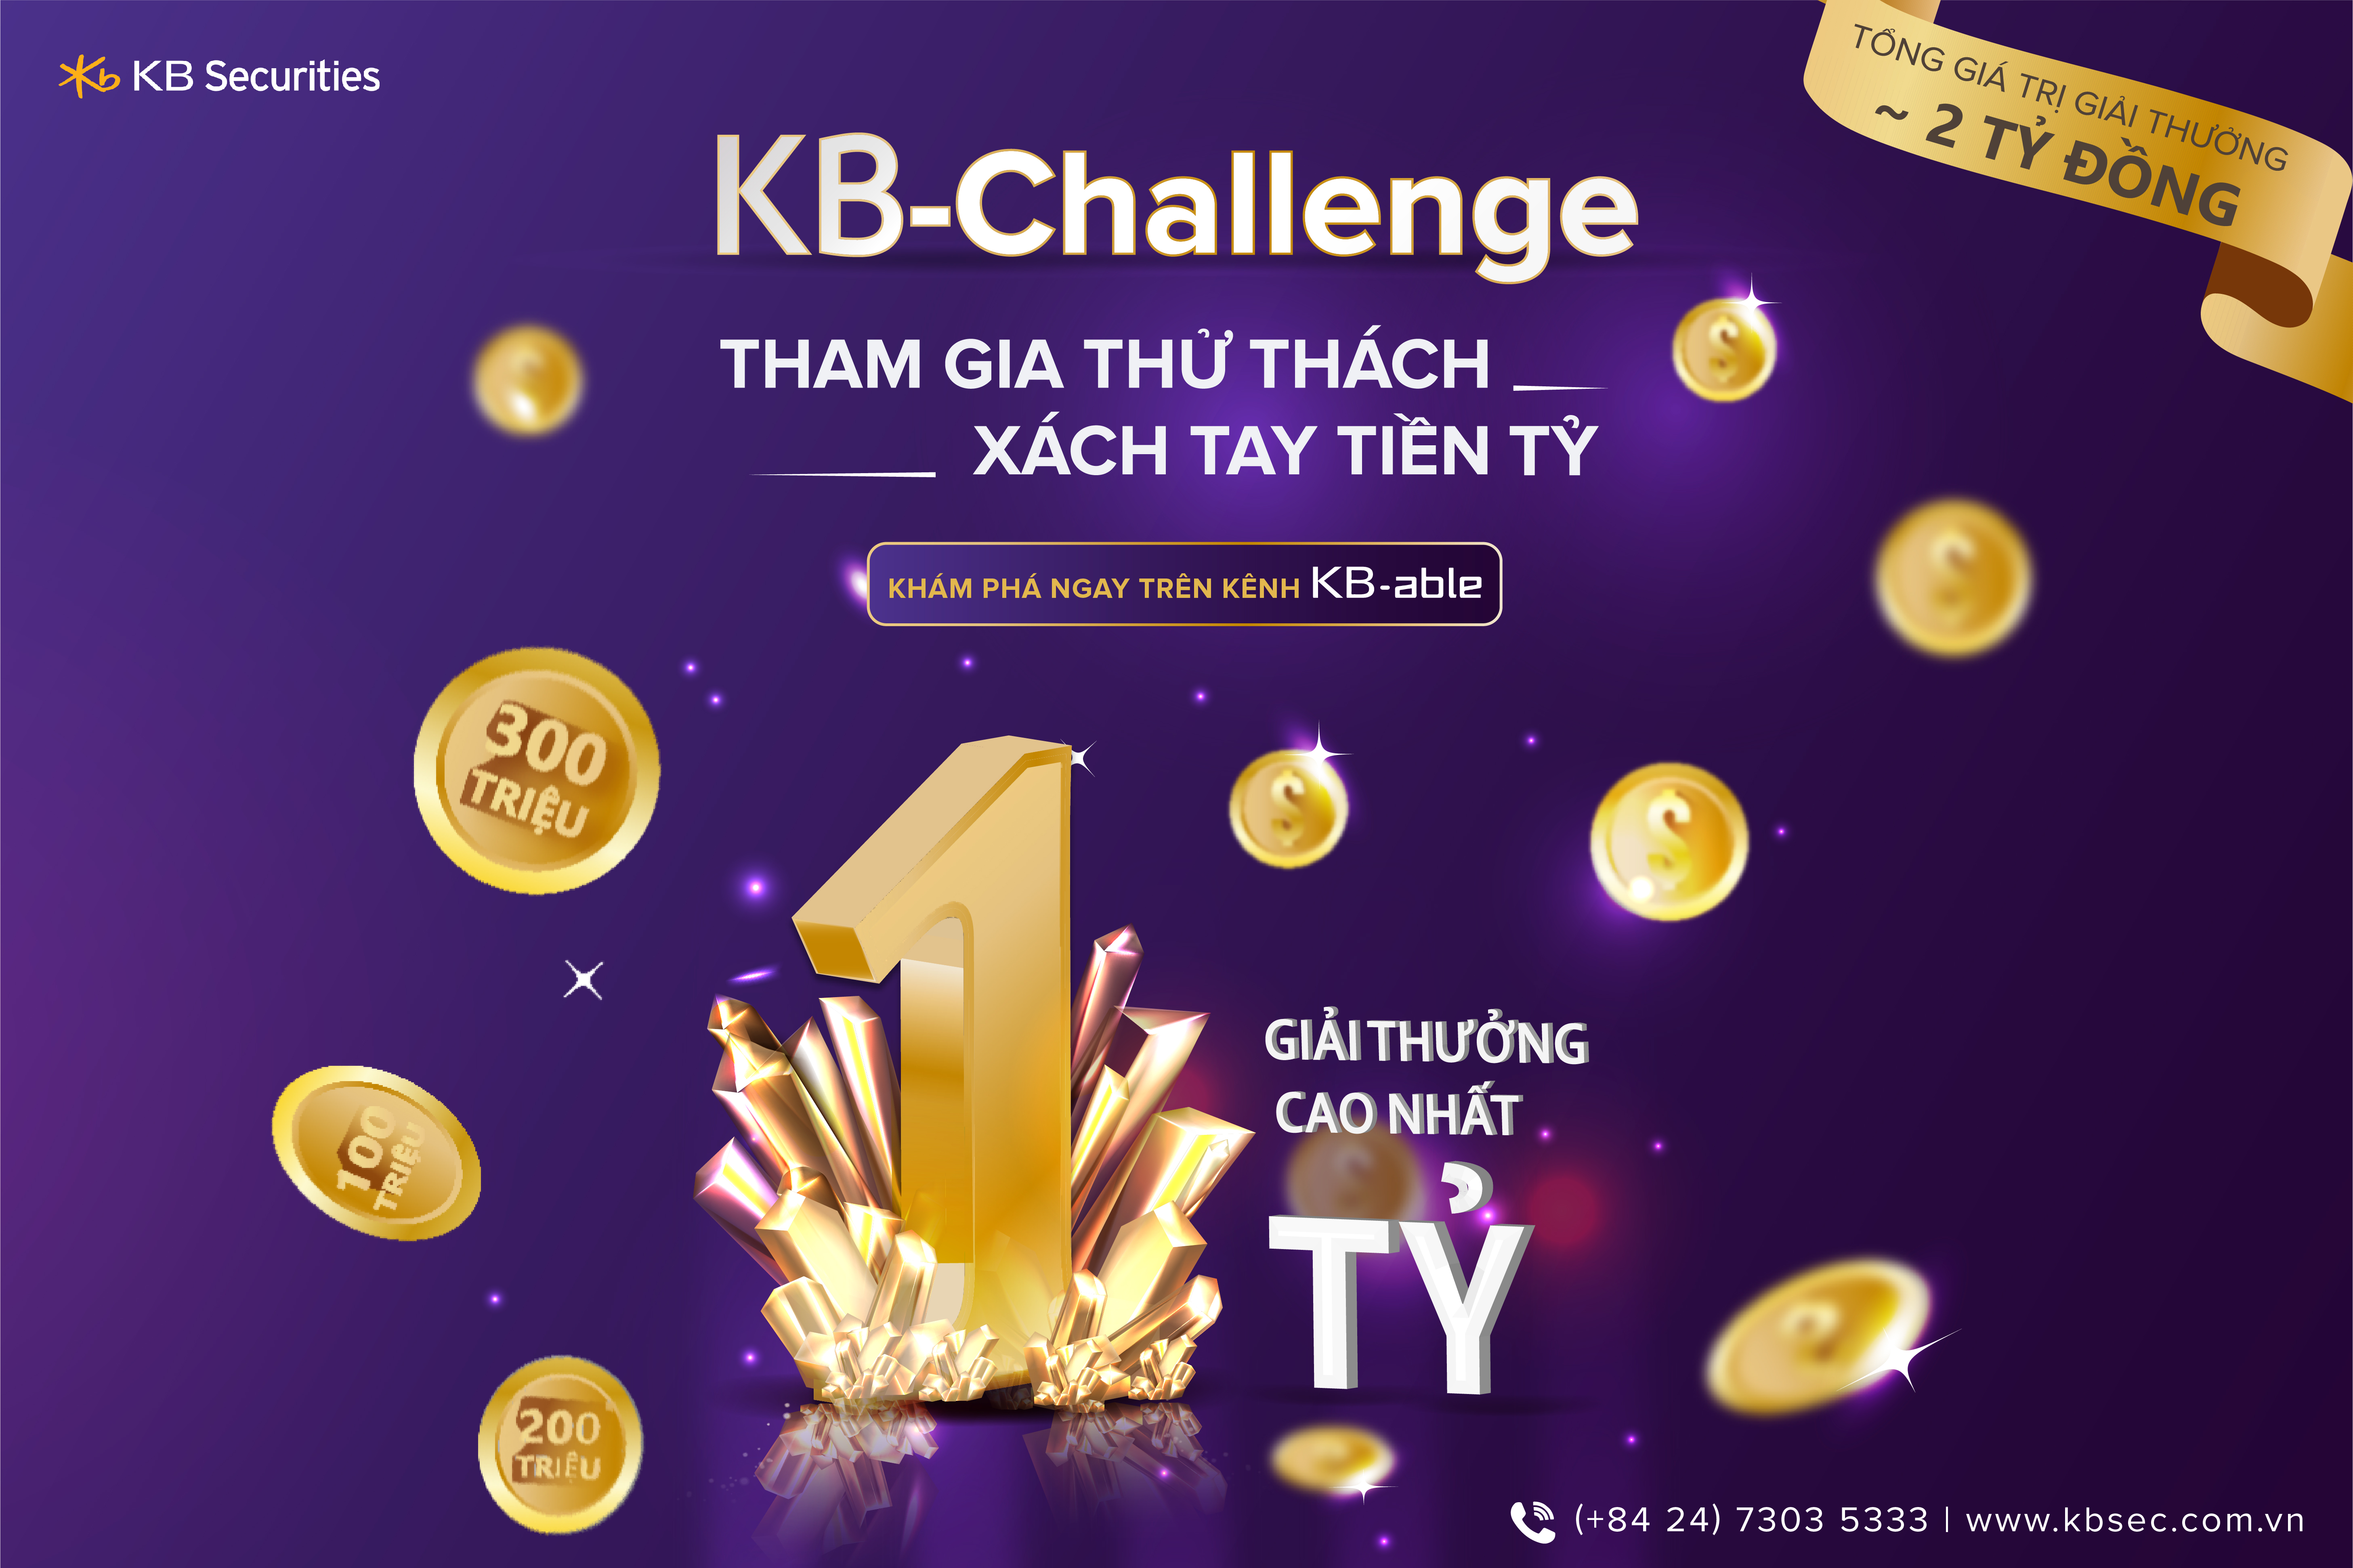 KB-Challenge - Award VND 1 billion is looking for the champion